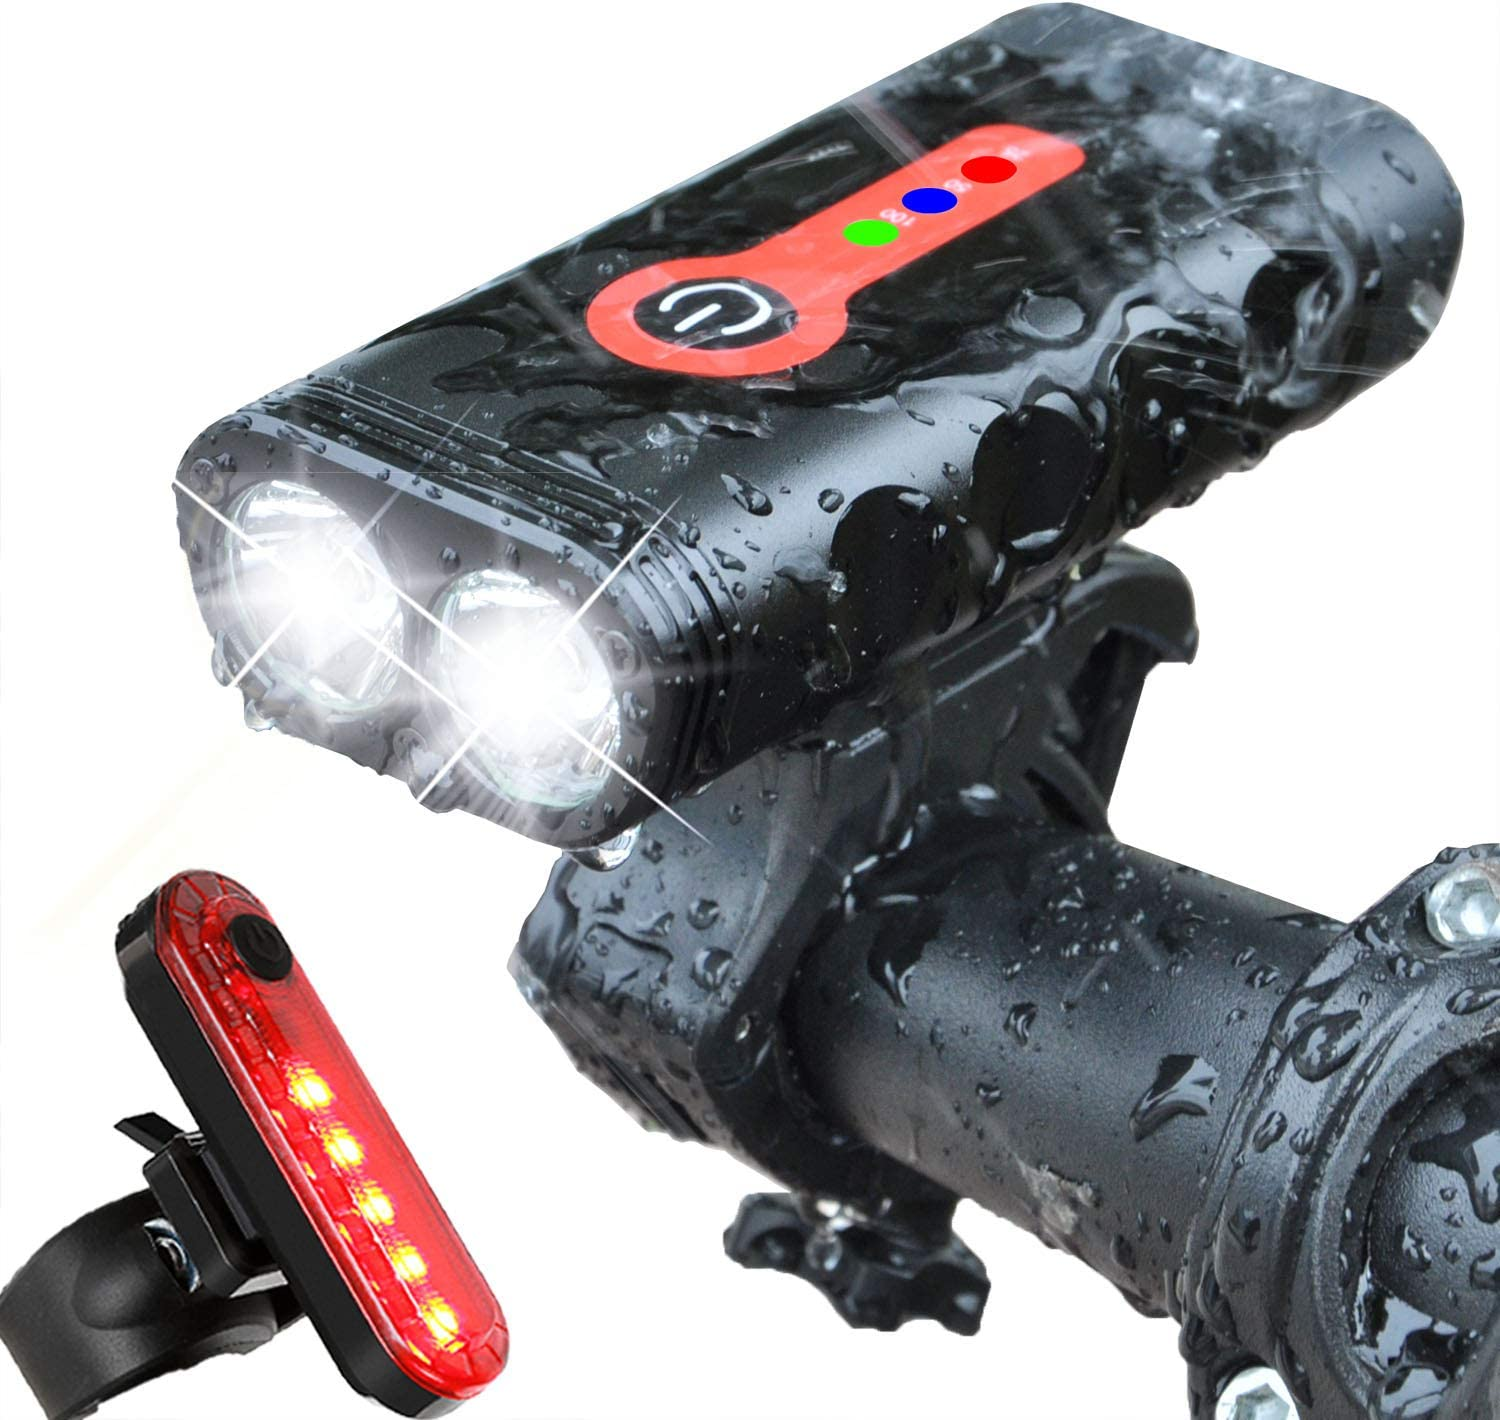 LED High-power Bicycle Bike Head Light USB Rechargeable Waterproof Front Lamp UK